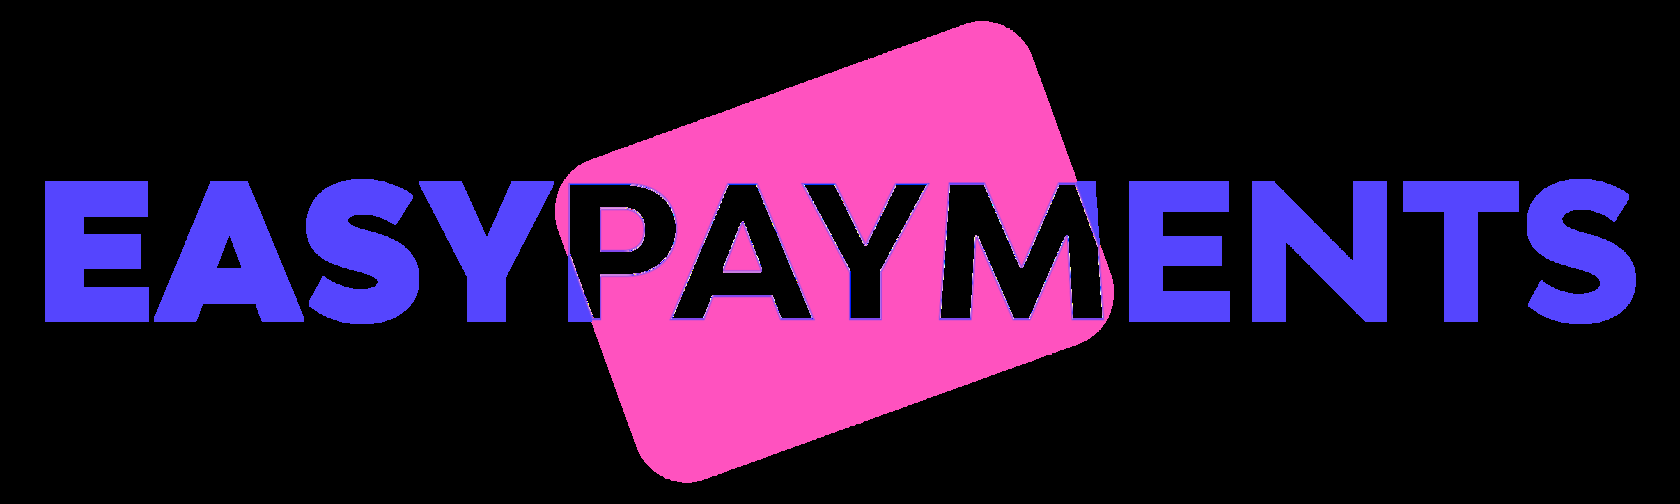 EASYPAYMENTS